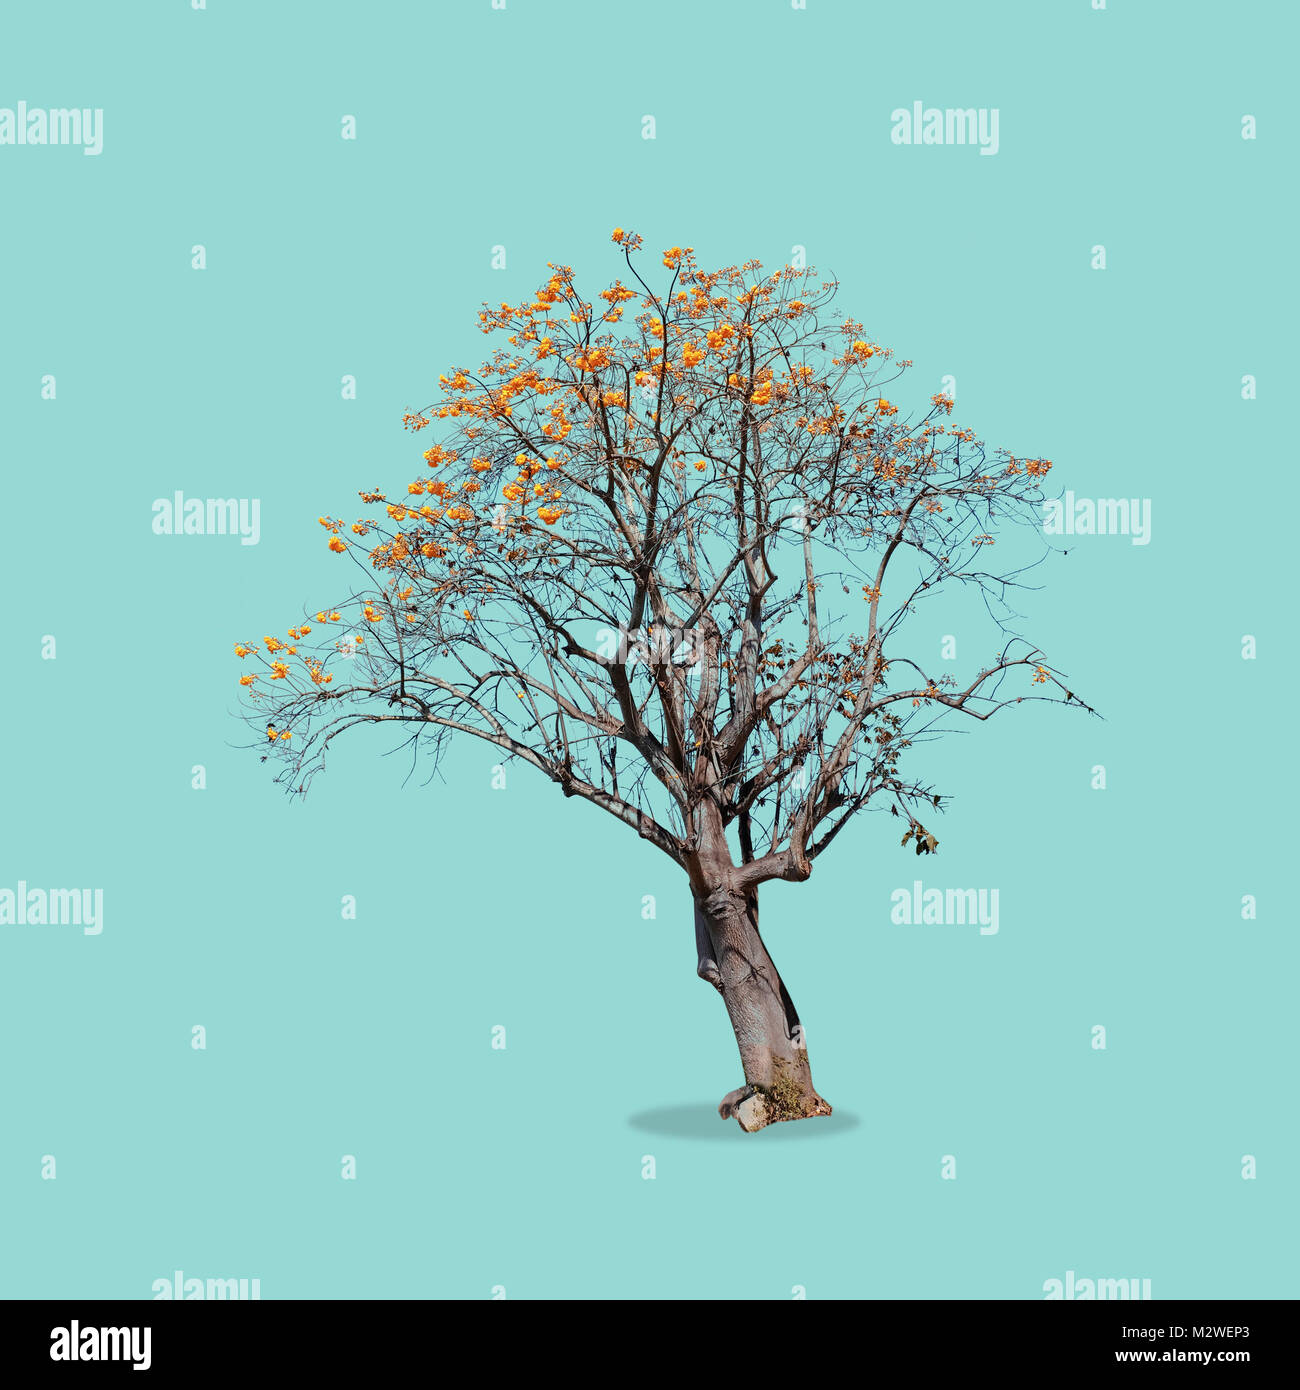 Big tree with a yellow flower on isolate stock photo 173893387 alamy big tree with a yellow flower on isolate mightylinksfo